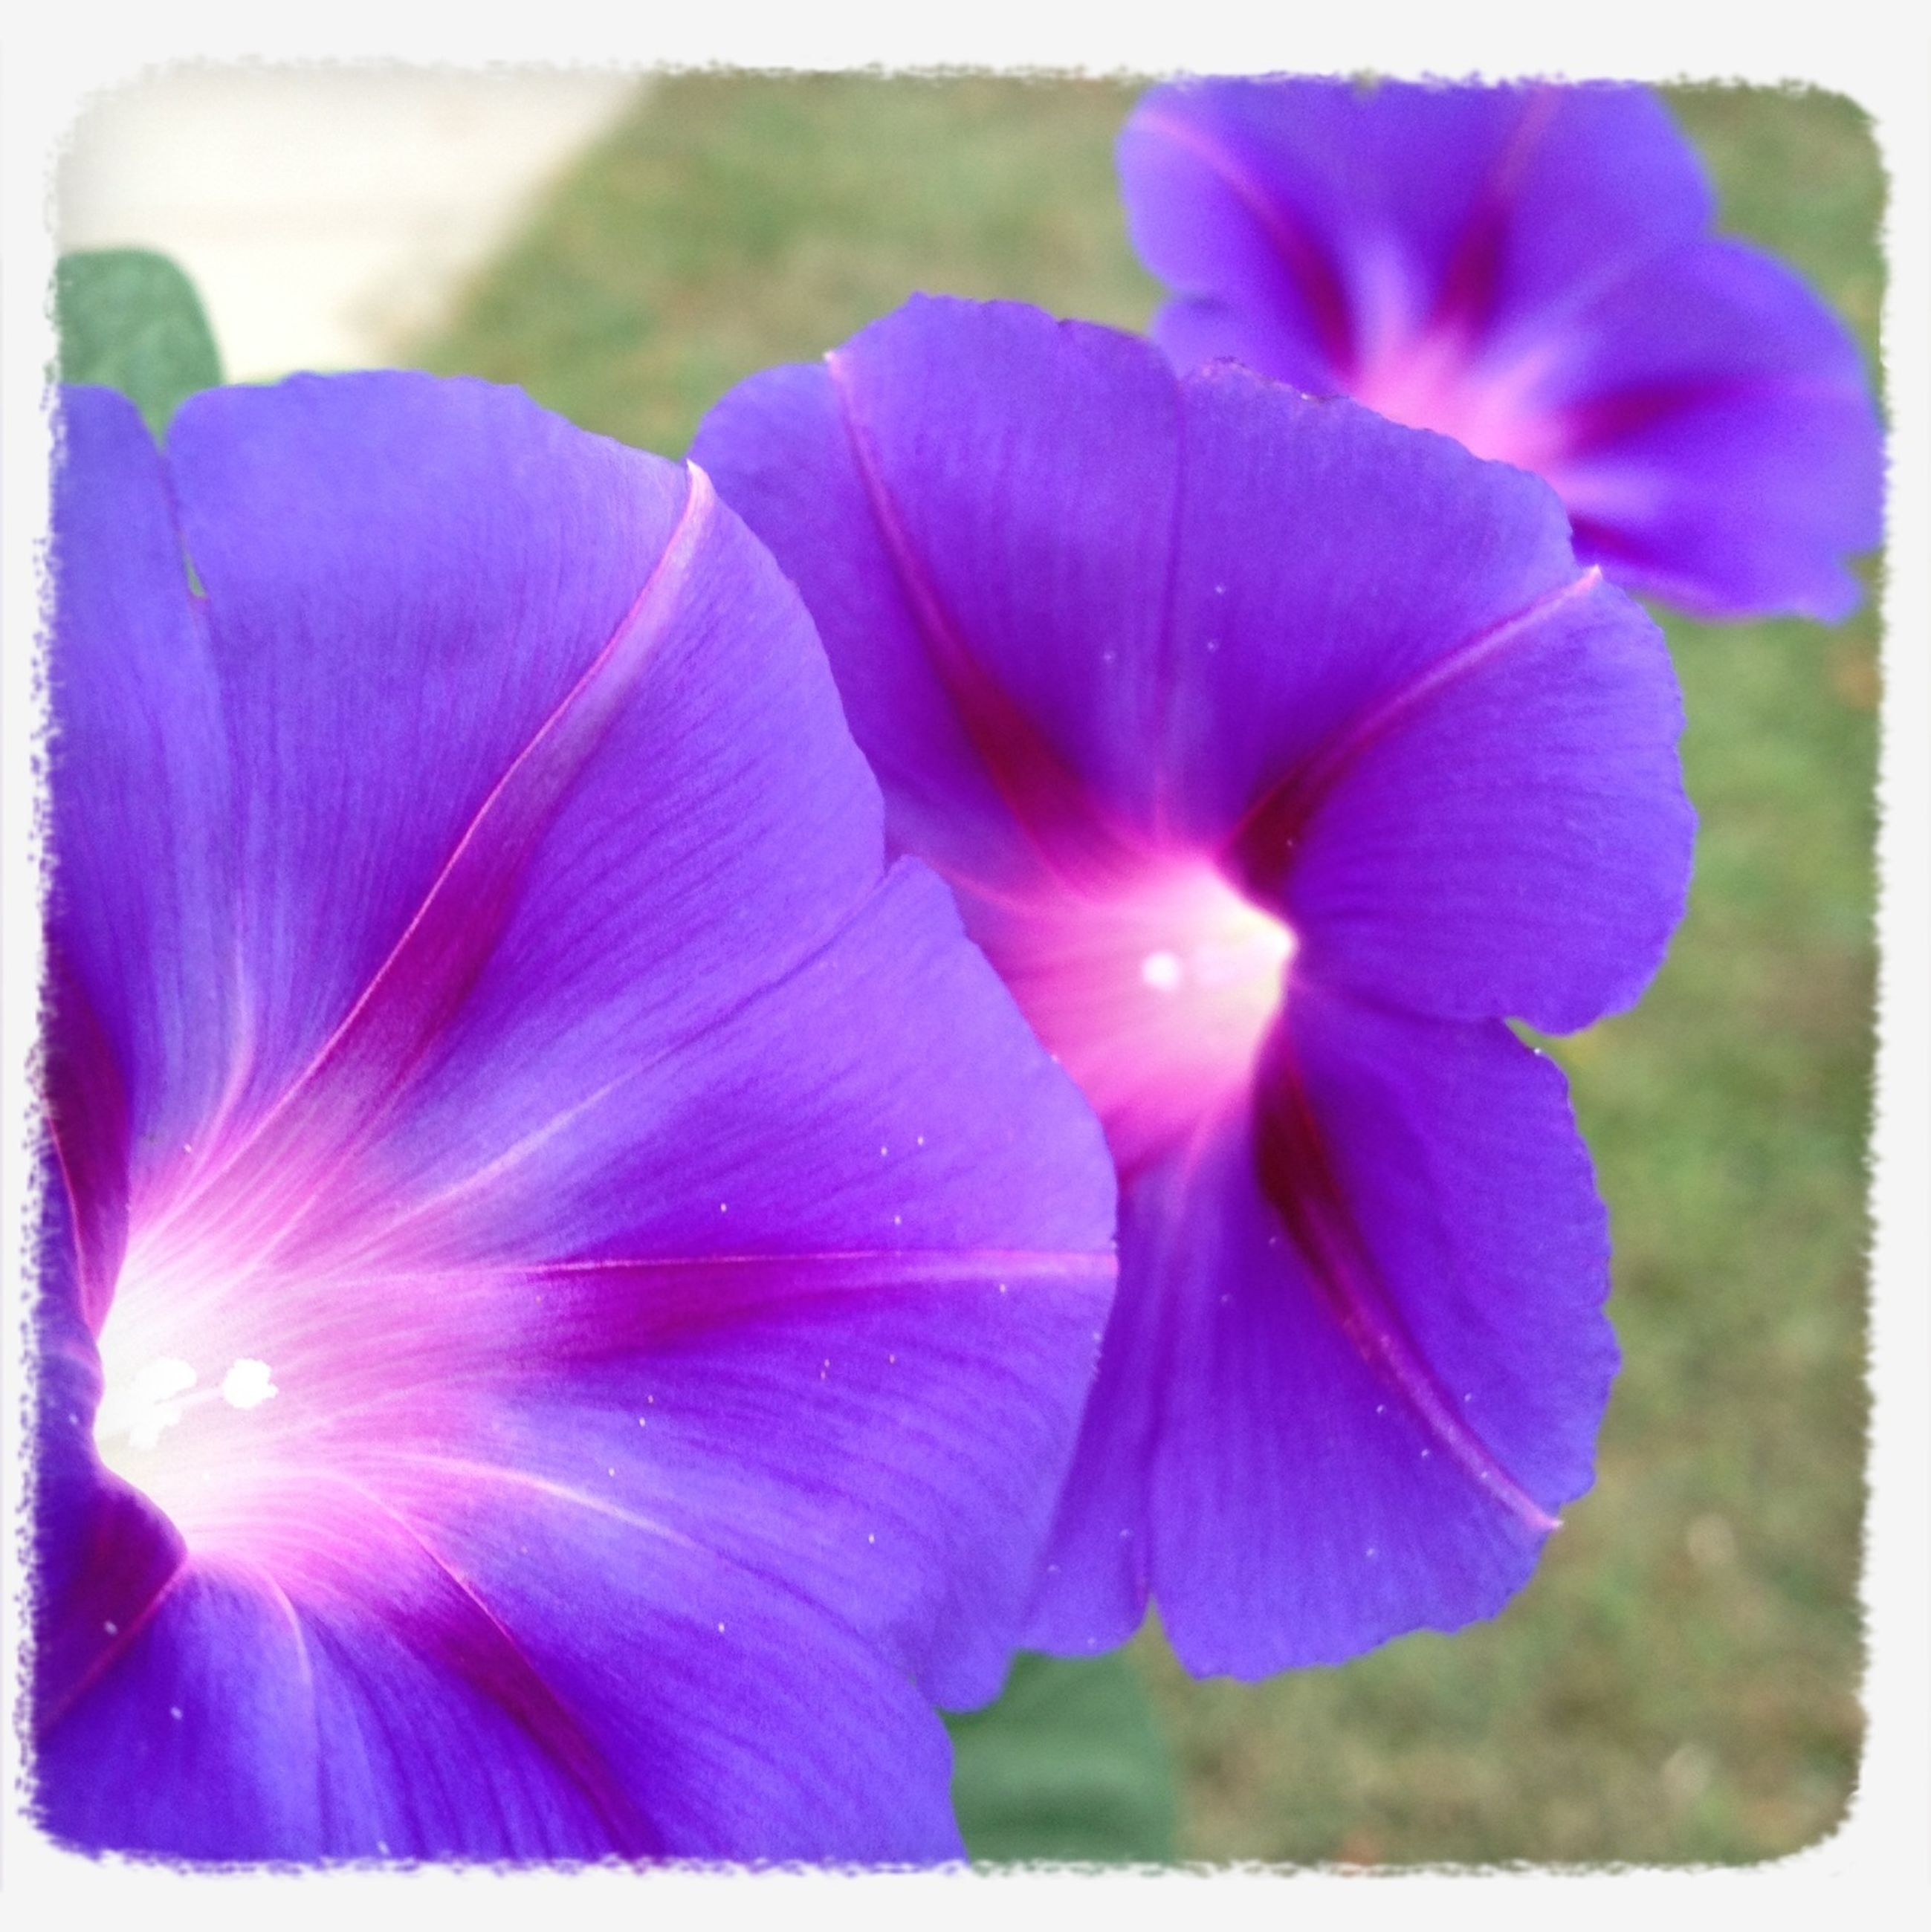 flower, petal, freshness, purple, flower head, fragility, beauty in nature, growth, close-up, nature, blooming, focus on foreground, transfer print, plant, auto post production filter, in bloom, stamen, single flower, blossom, pink color